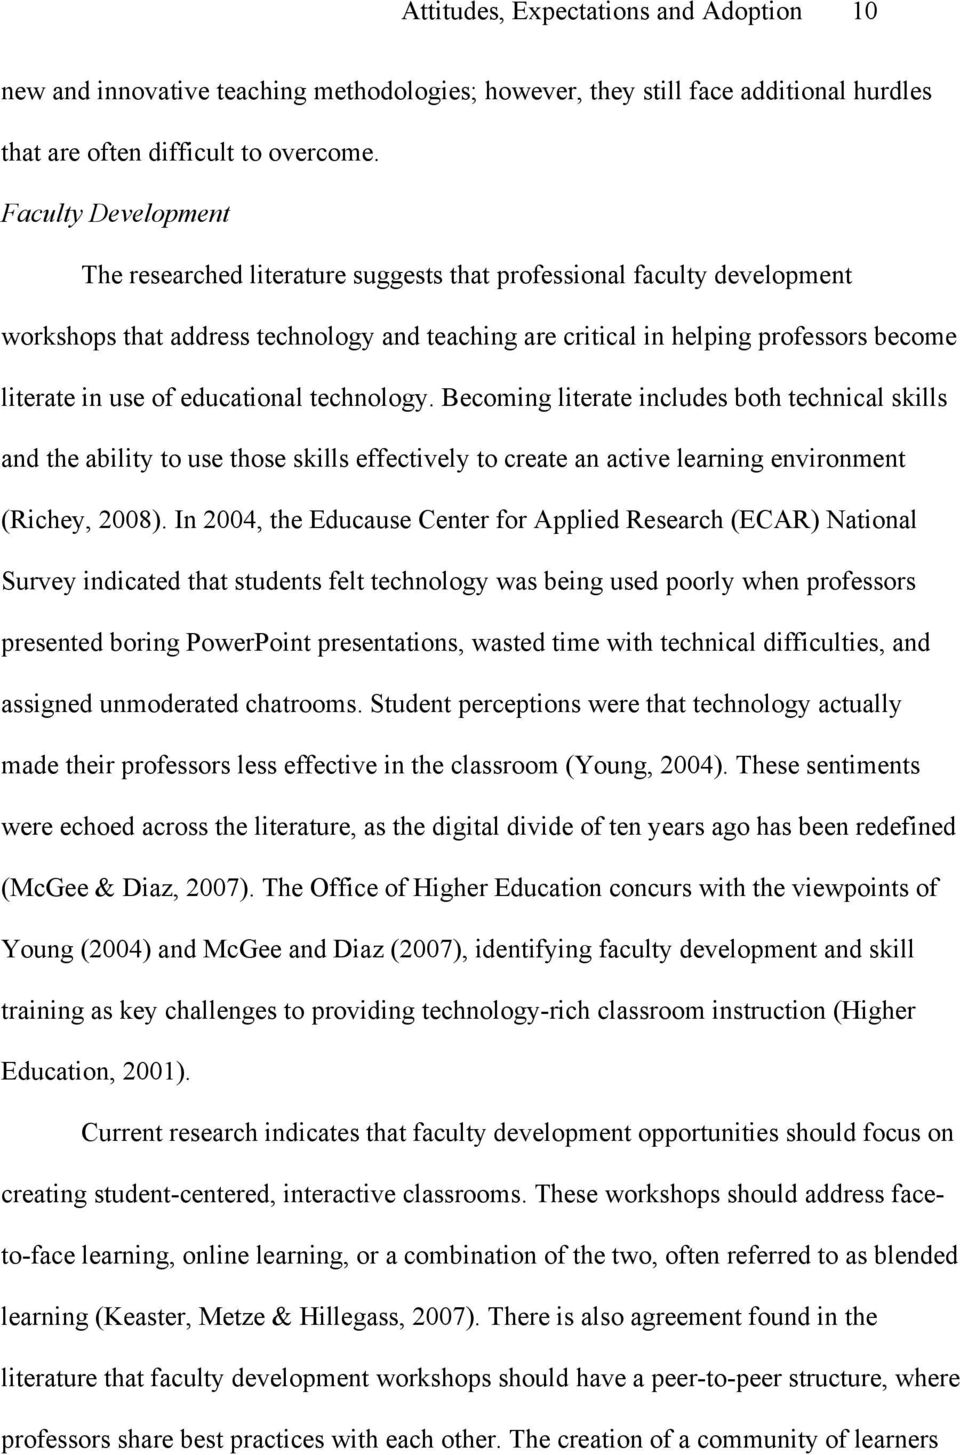 of educational technology. Becoming literate includes both technical skills and the ability to use those skills effectively to create an active learning environment (Richey, 2008).